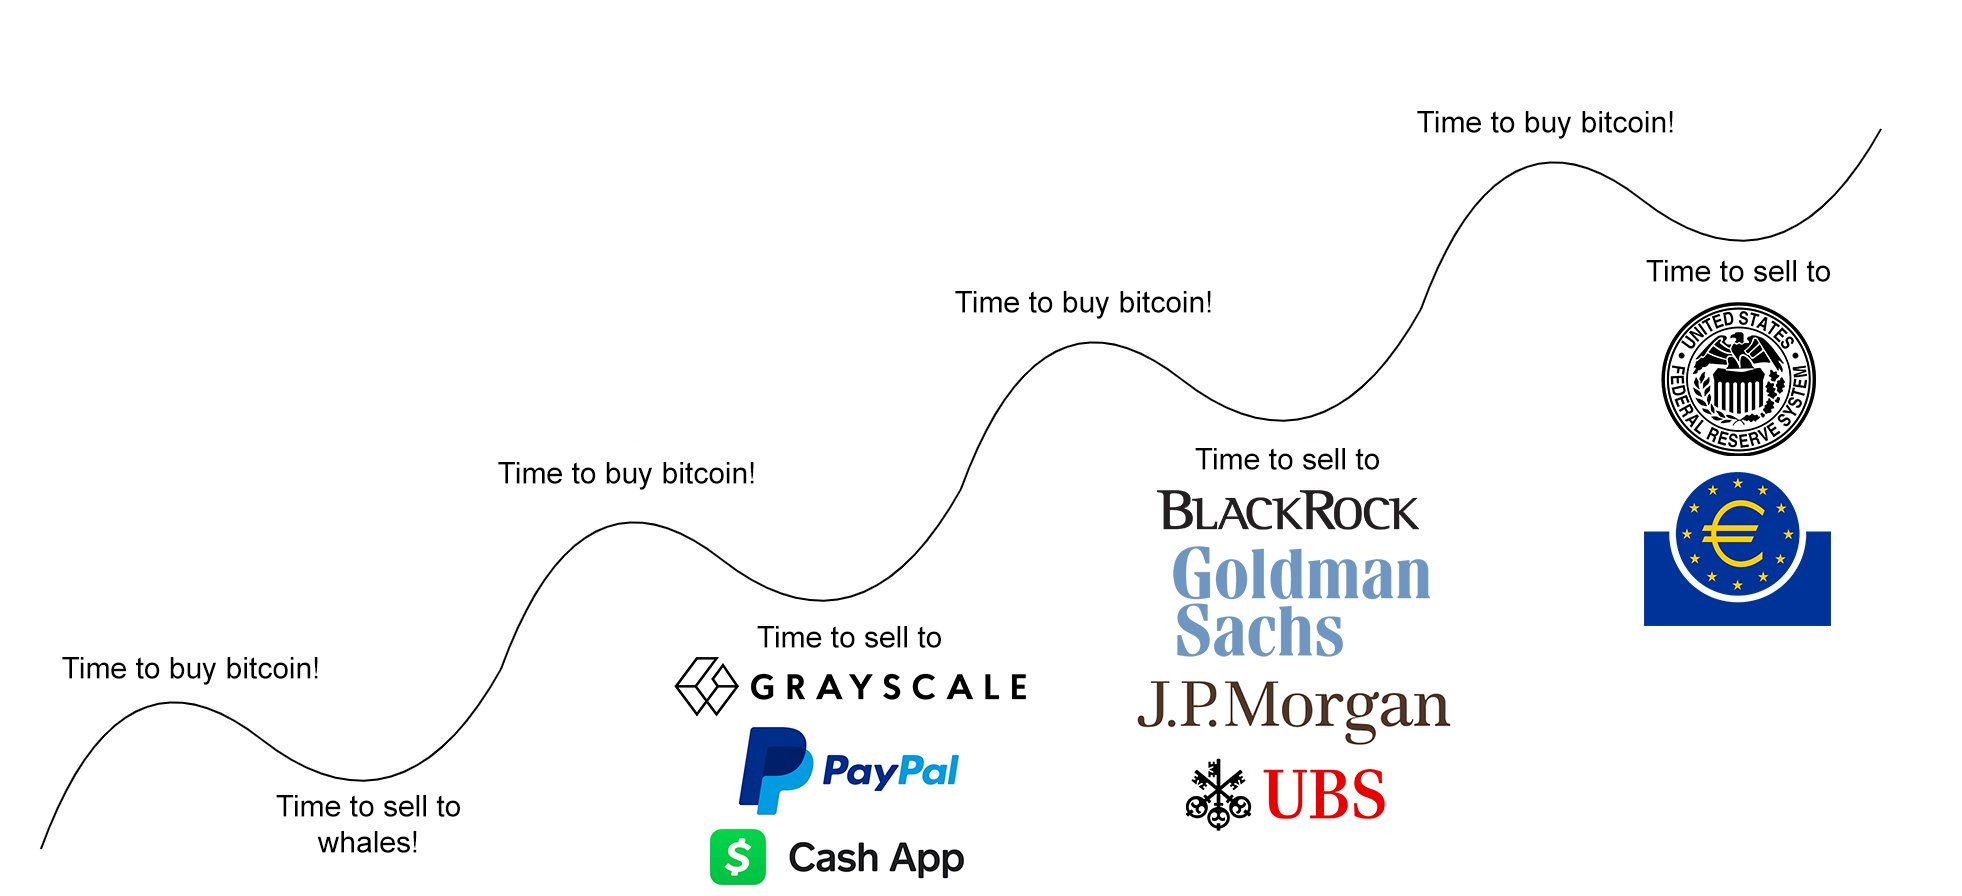 Funny chart: Selling BTC to whales on the dip!